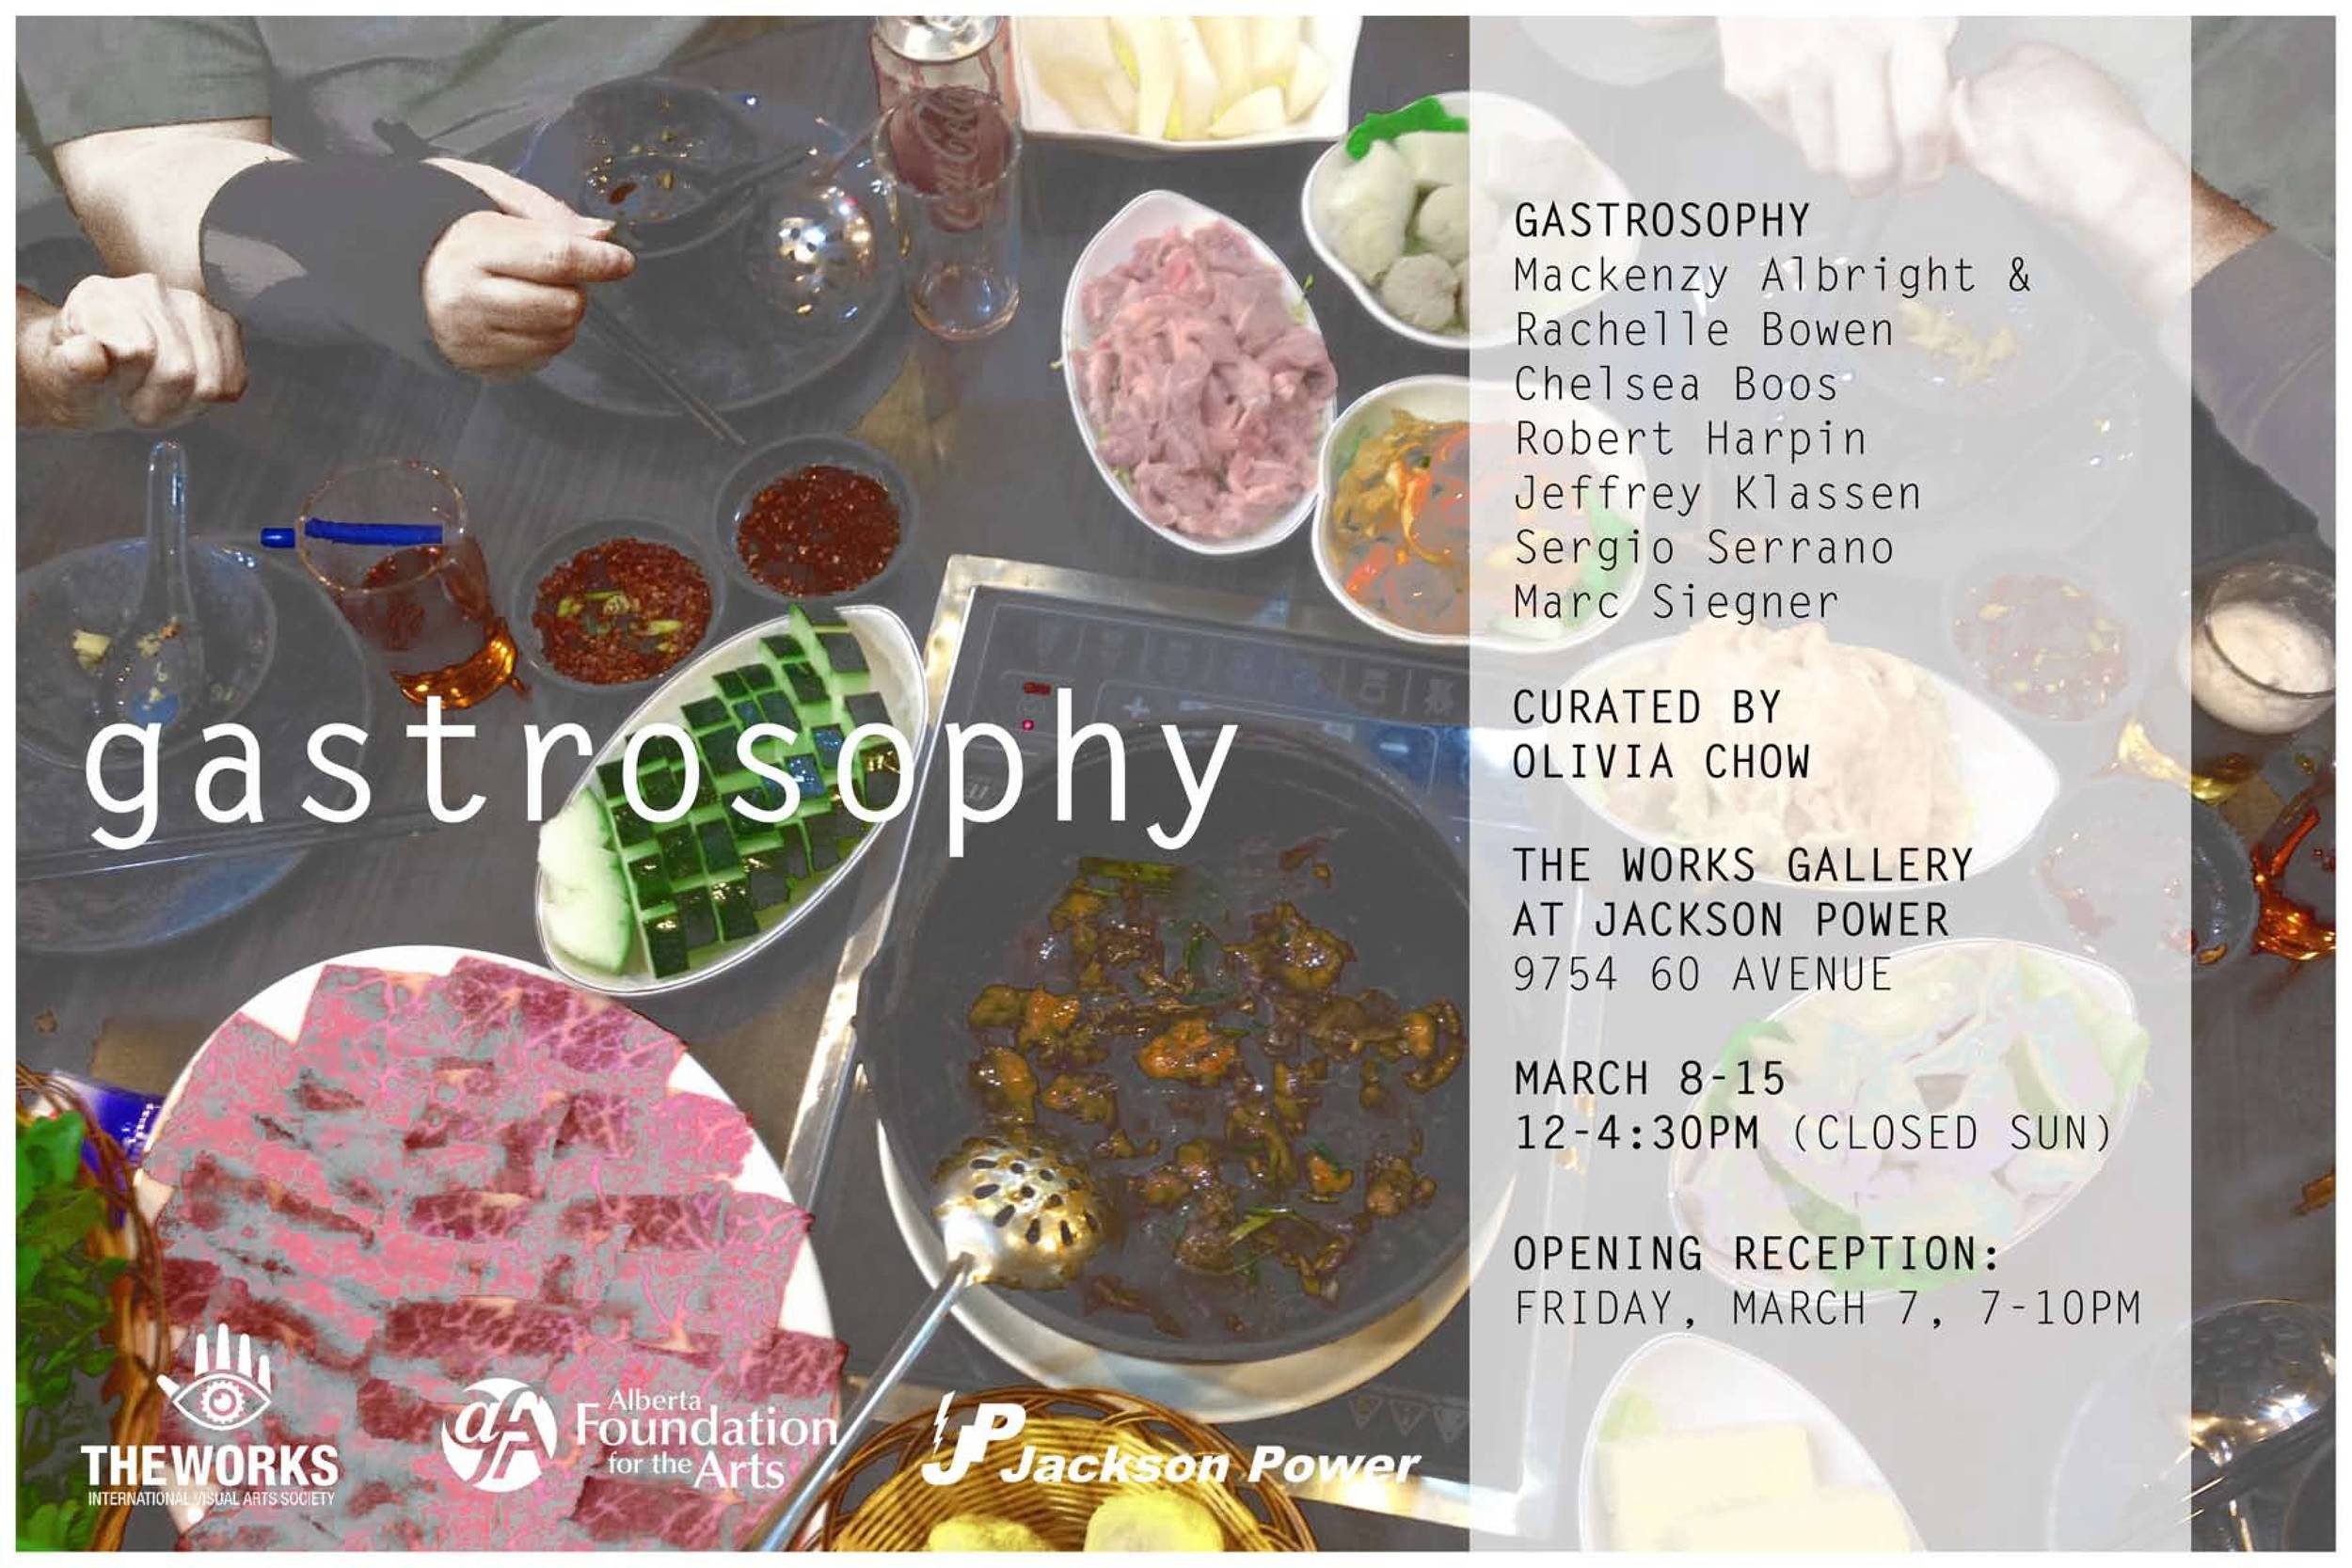 Gastrosophy, Curated by Olivia Chow (2014)